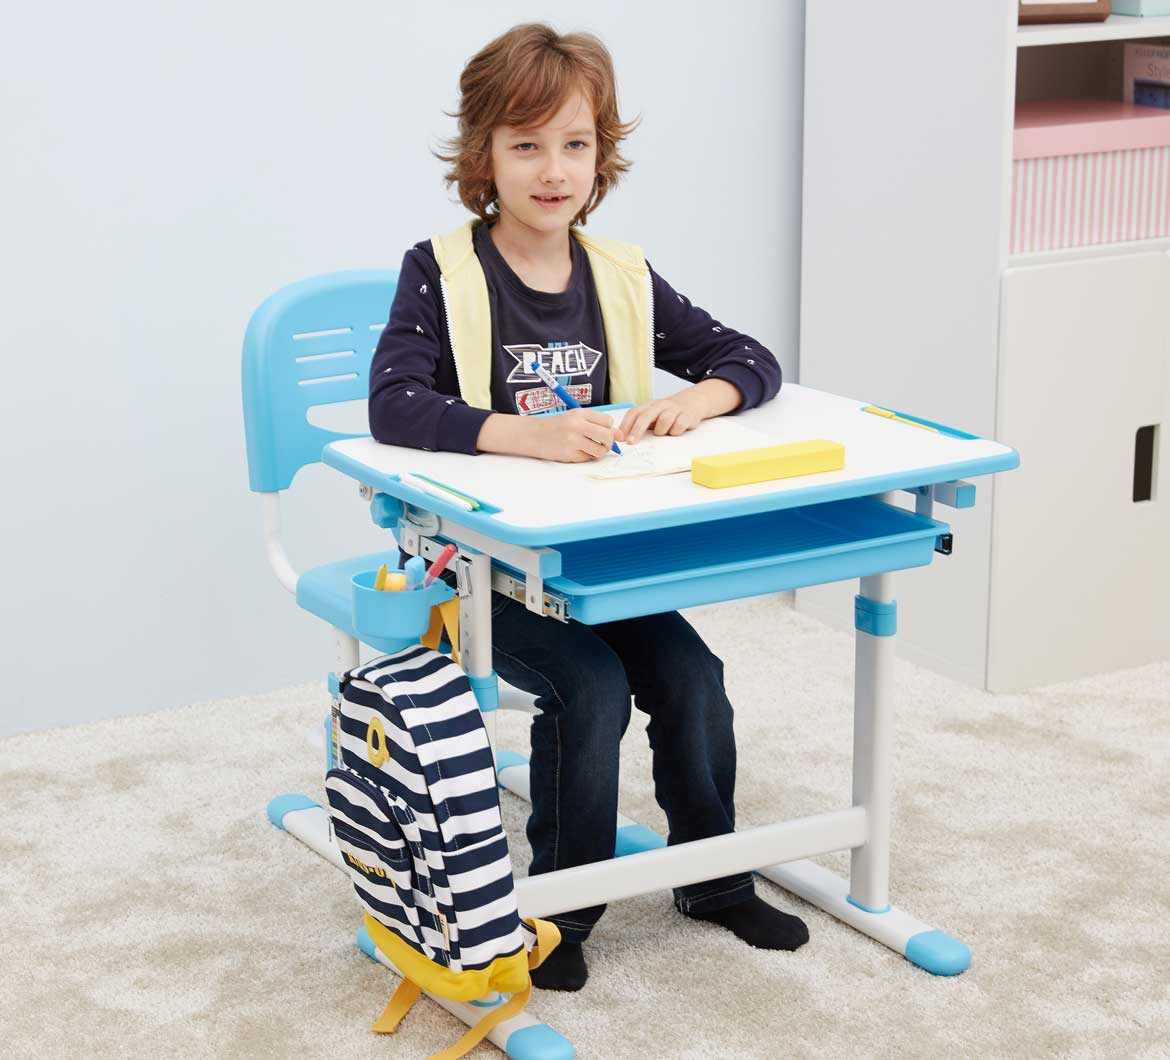 Mini Blue Desk is Great for Kids